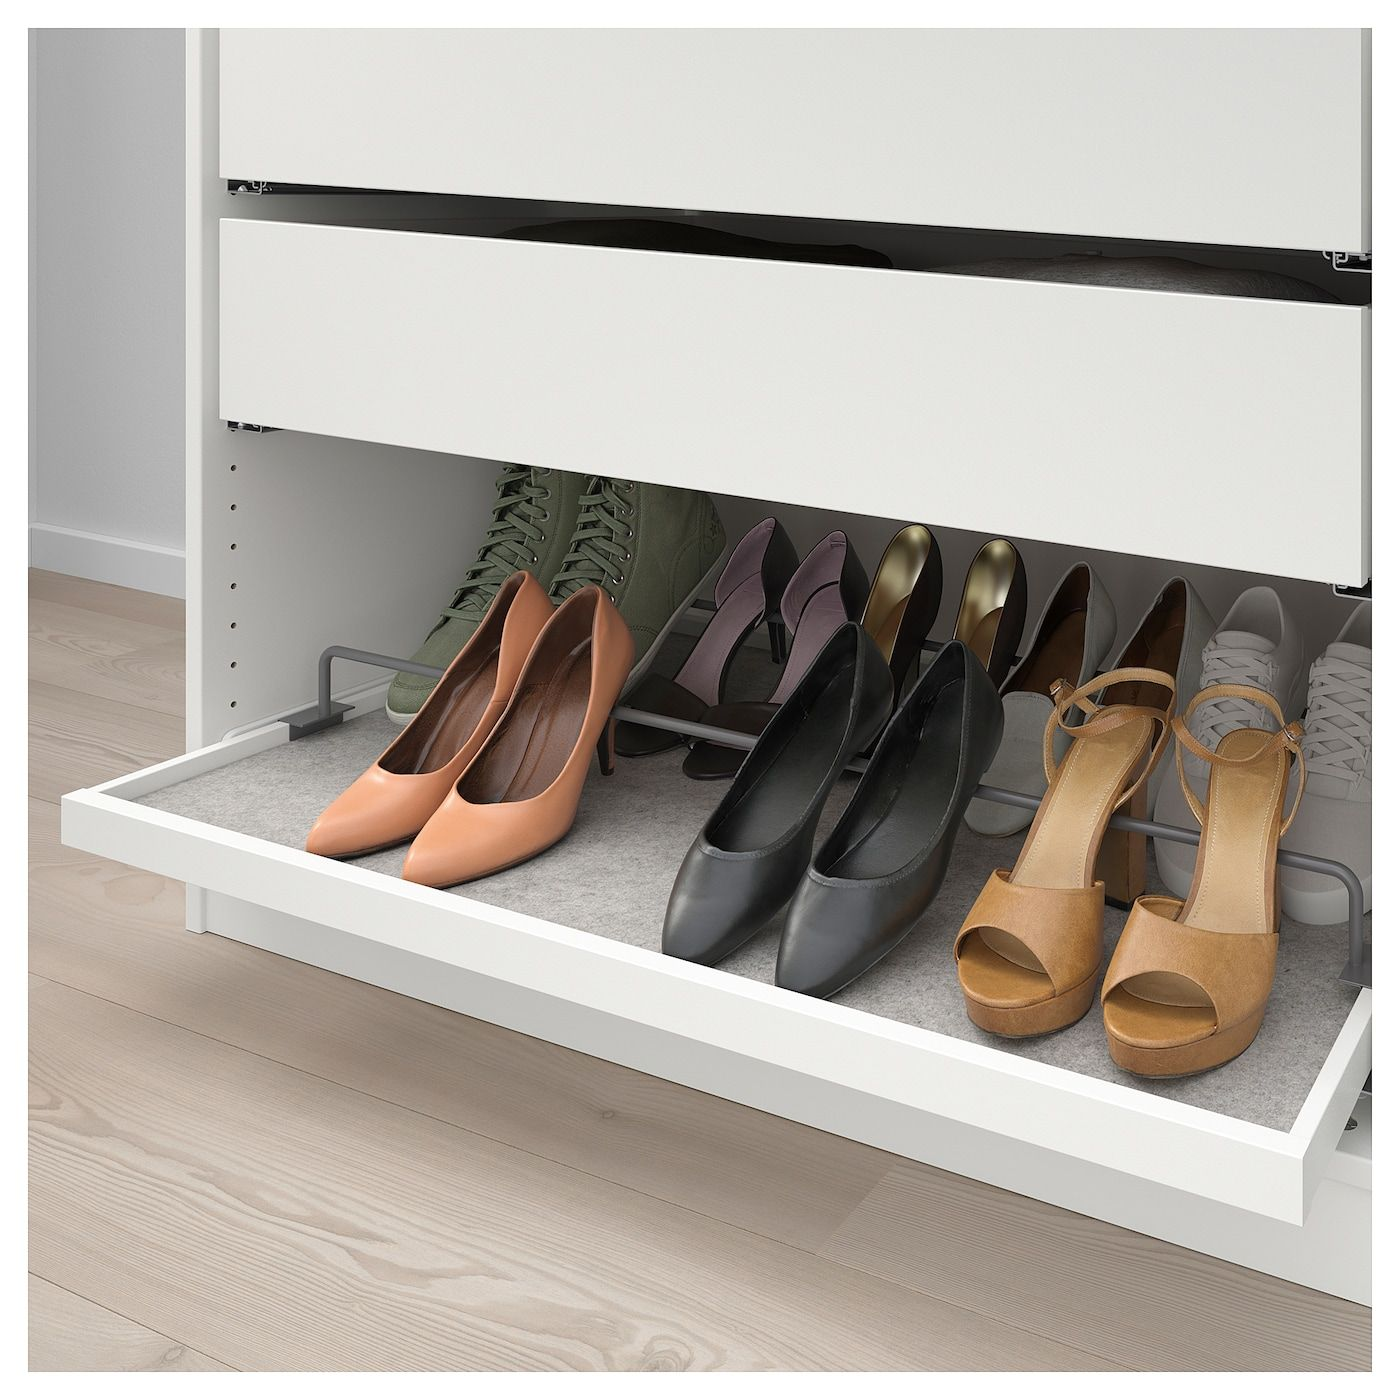 Ikea Komplement Pull Out Tray With Shoe Rail Ikea Komplement Shoe Drawer Ikea